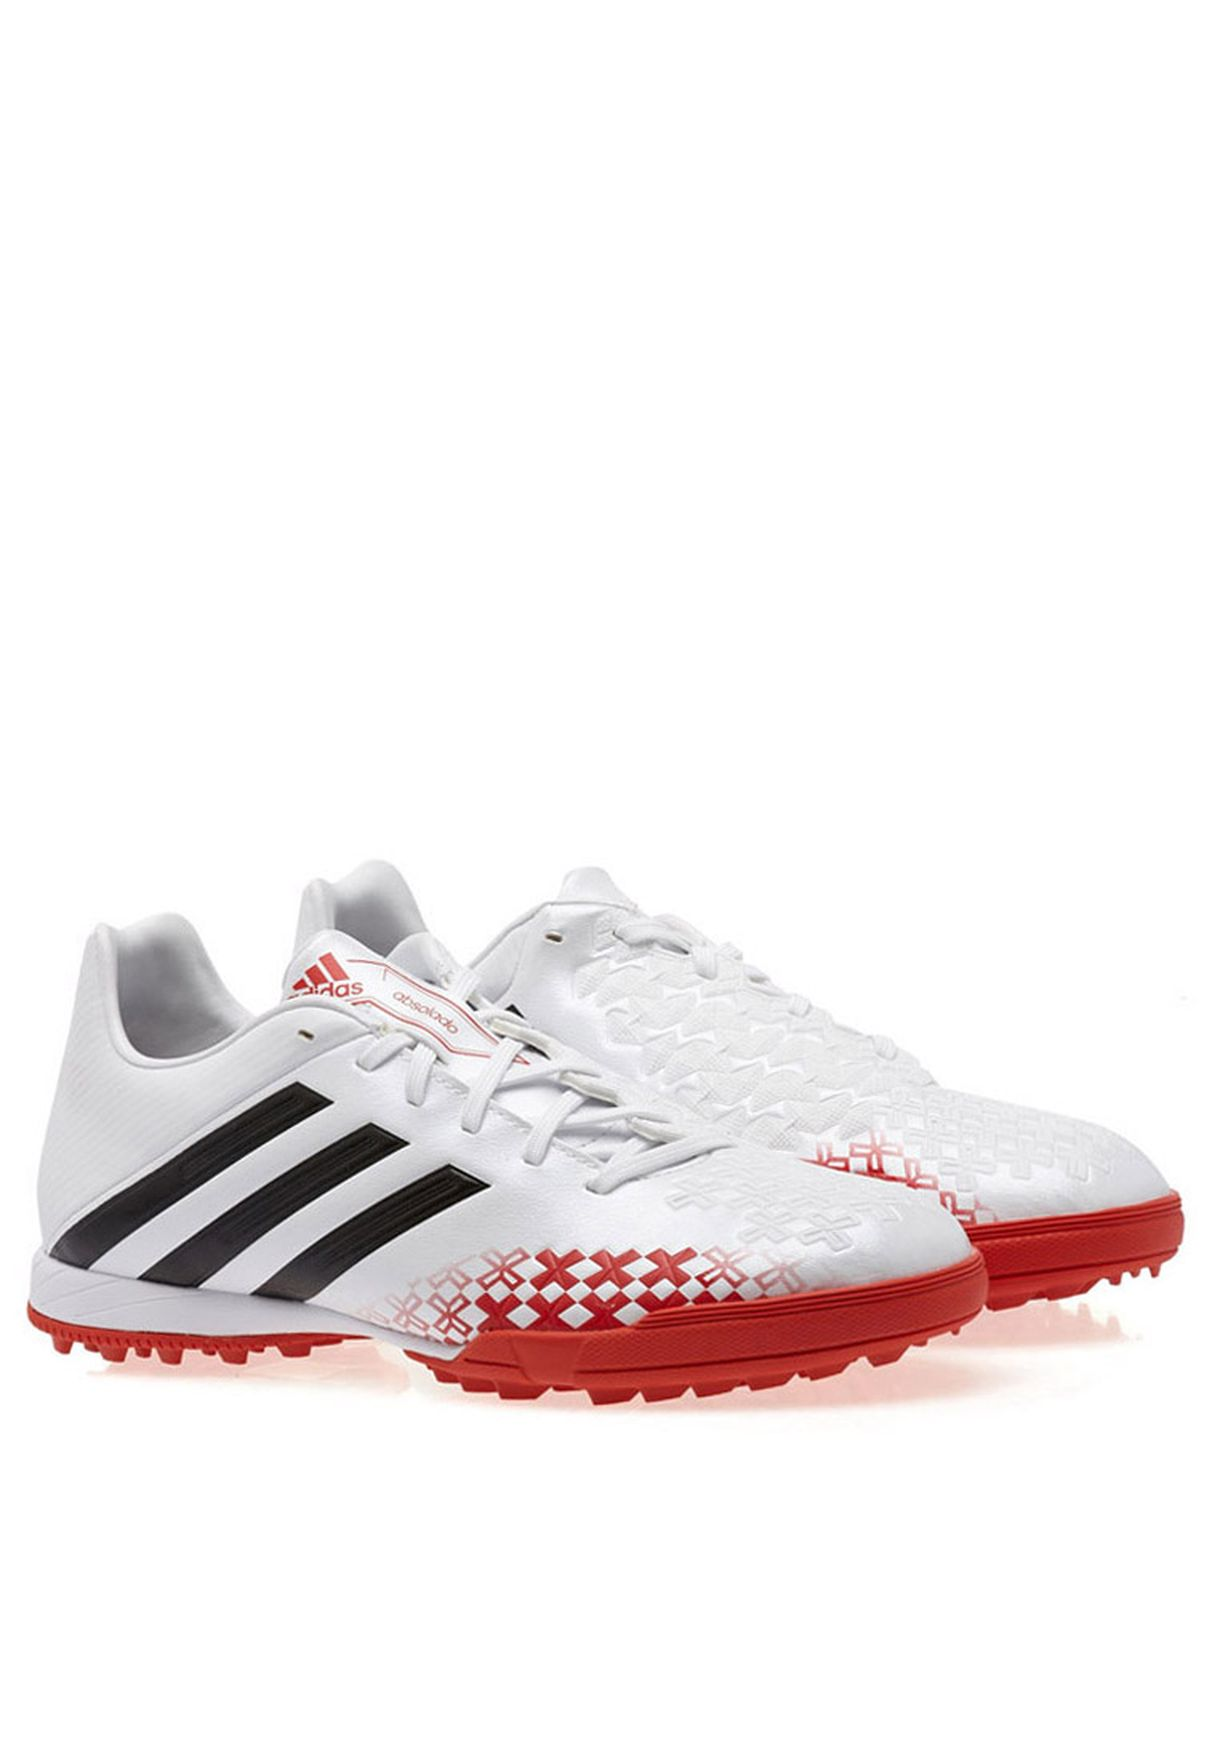 Shop adidas white P Absolado LZ TRX TF Q21669 for Men in